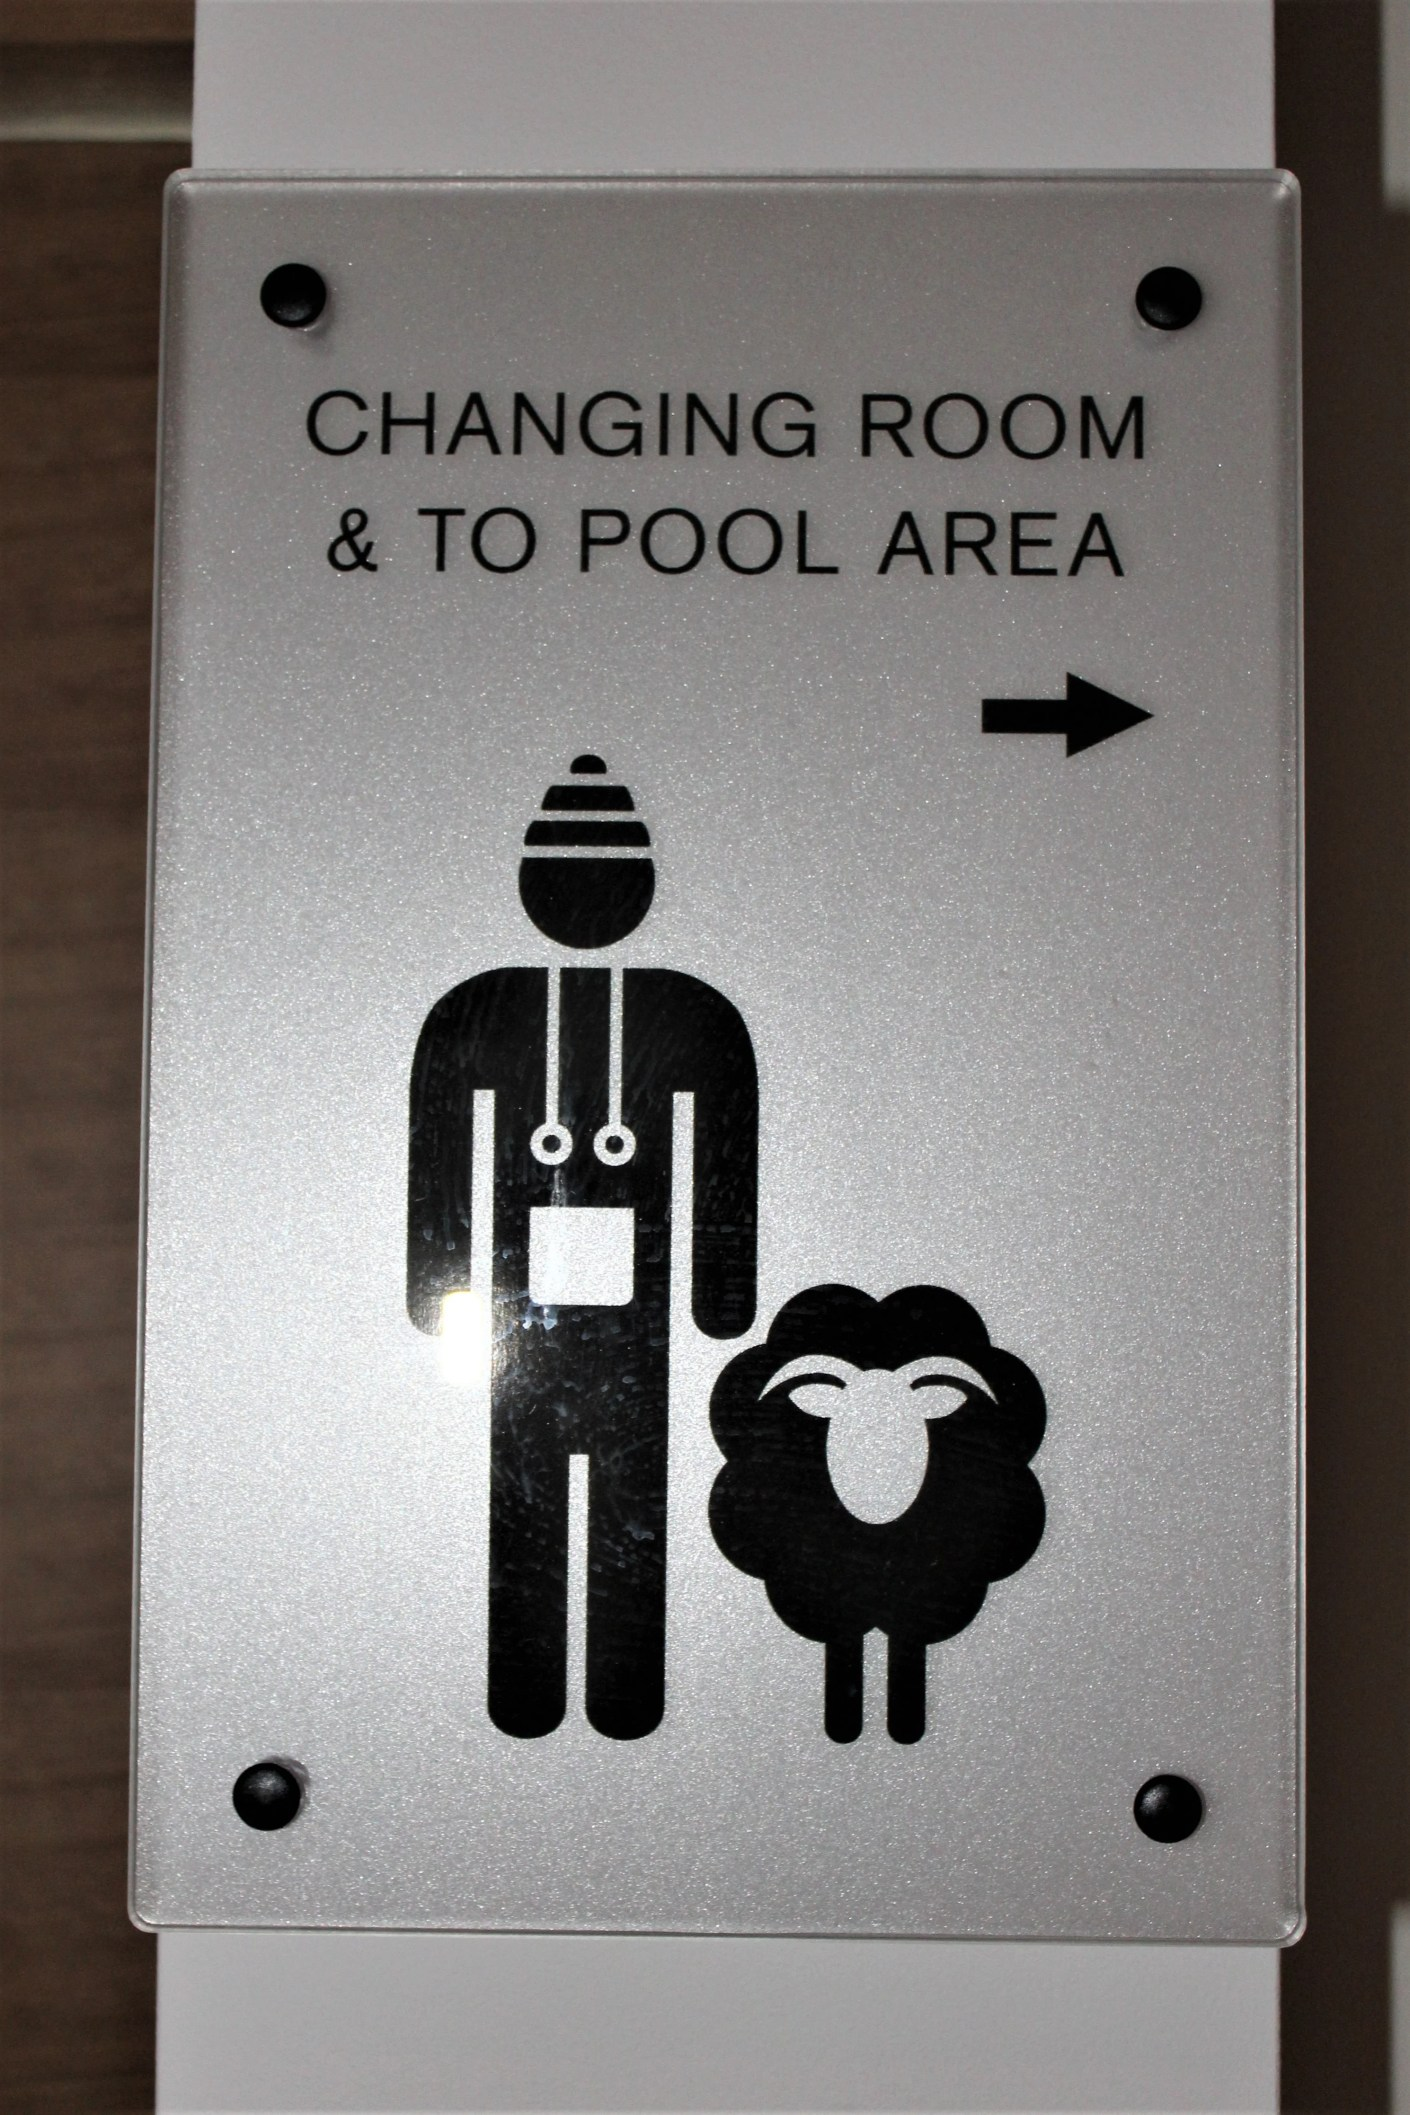 Lava has large changing rooms that can be used prior to entering the pool area.